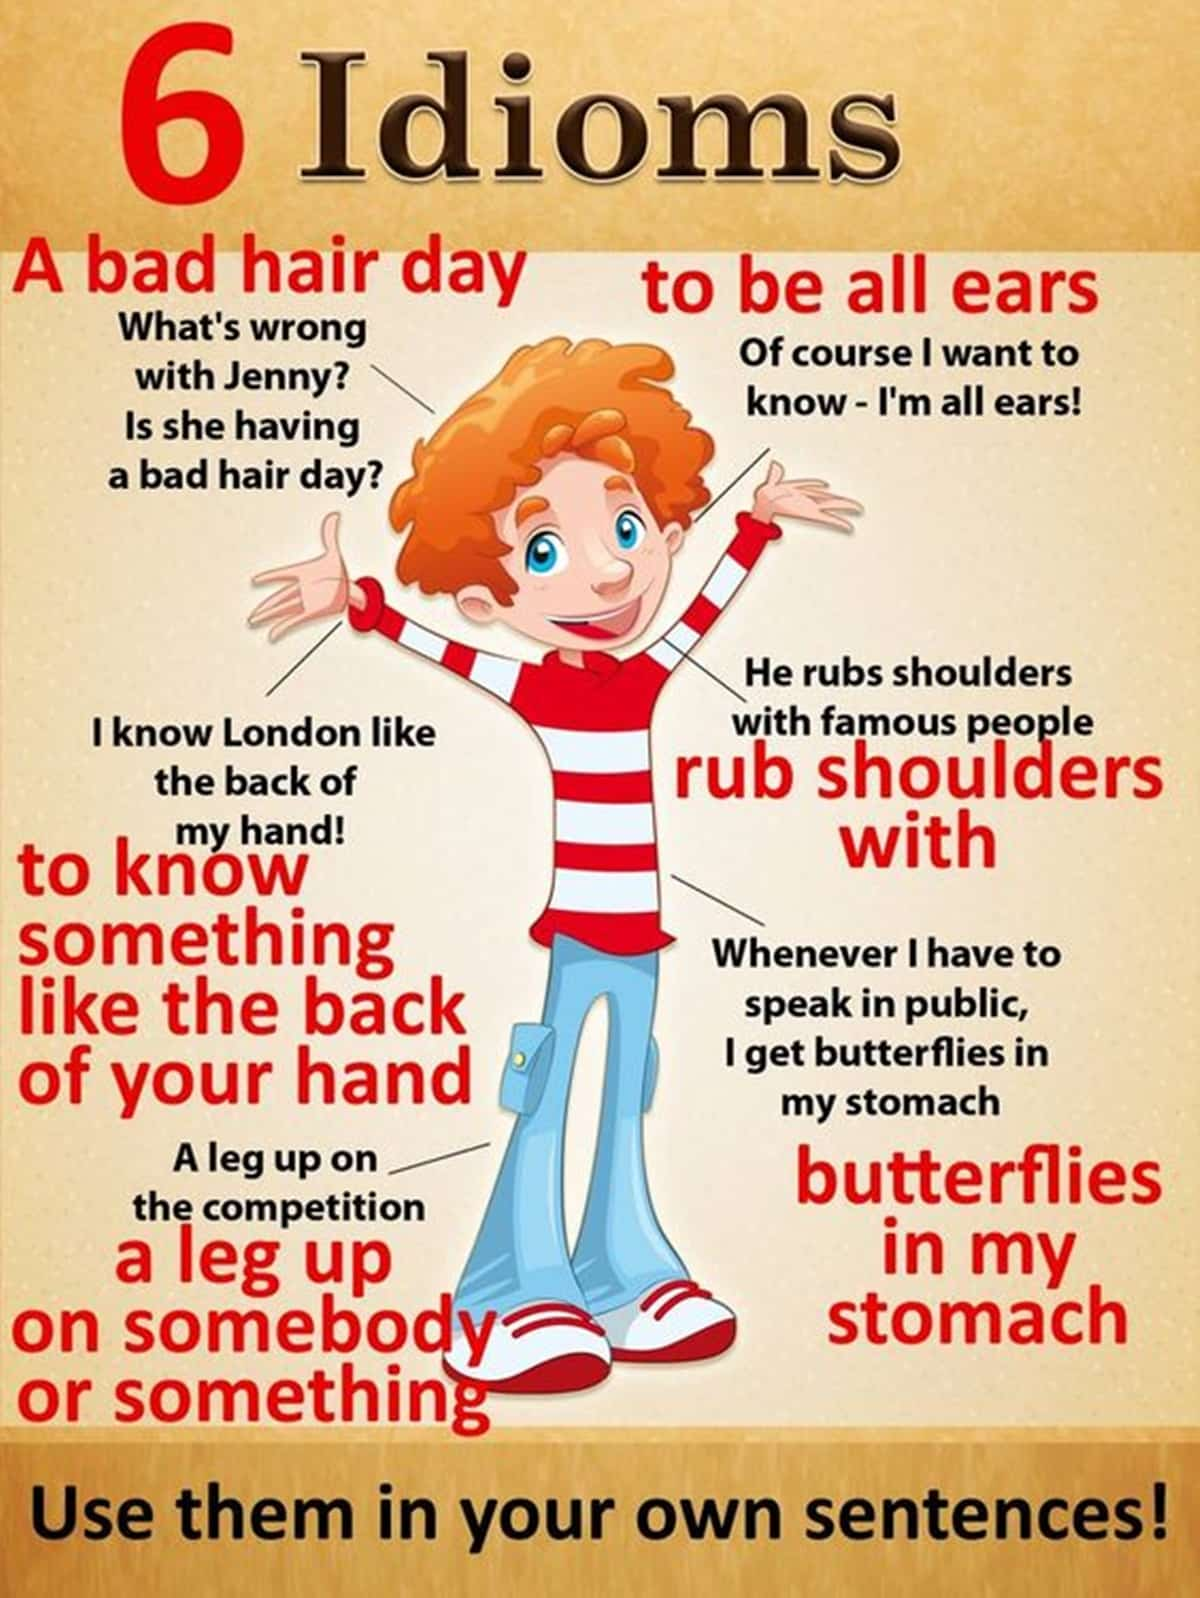 10 Frequently Used Body Idioms With Their Meanings